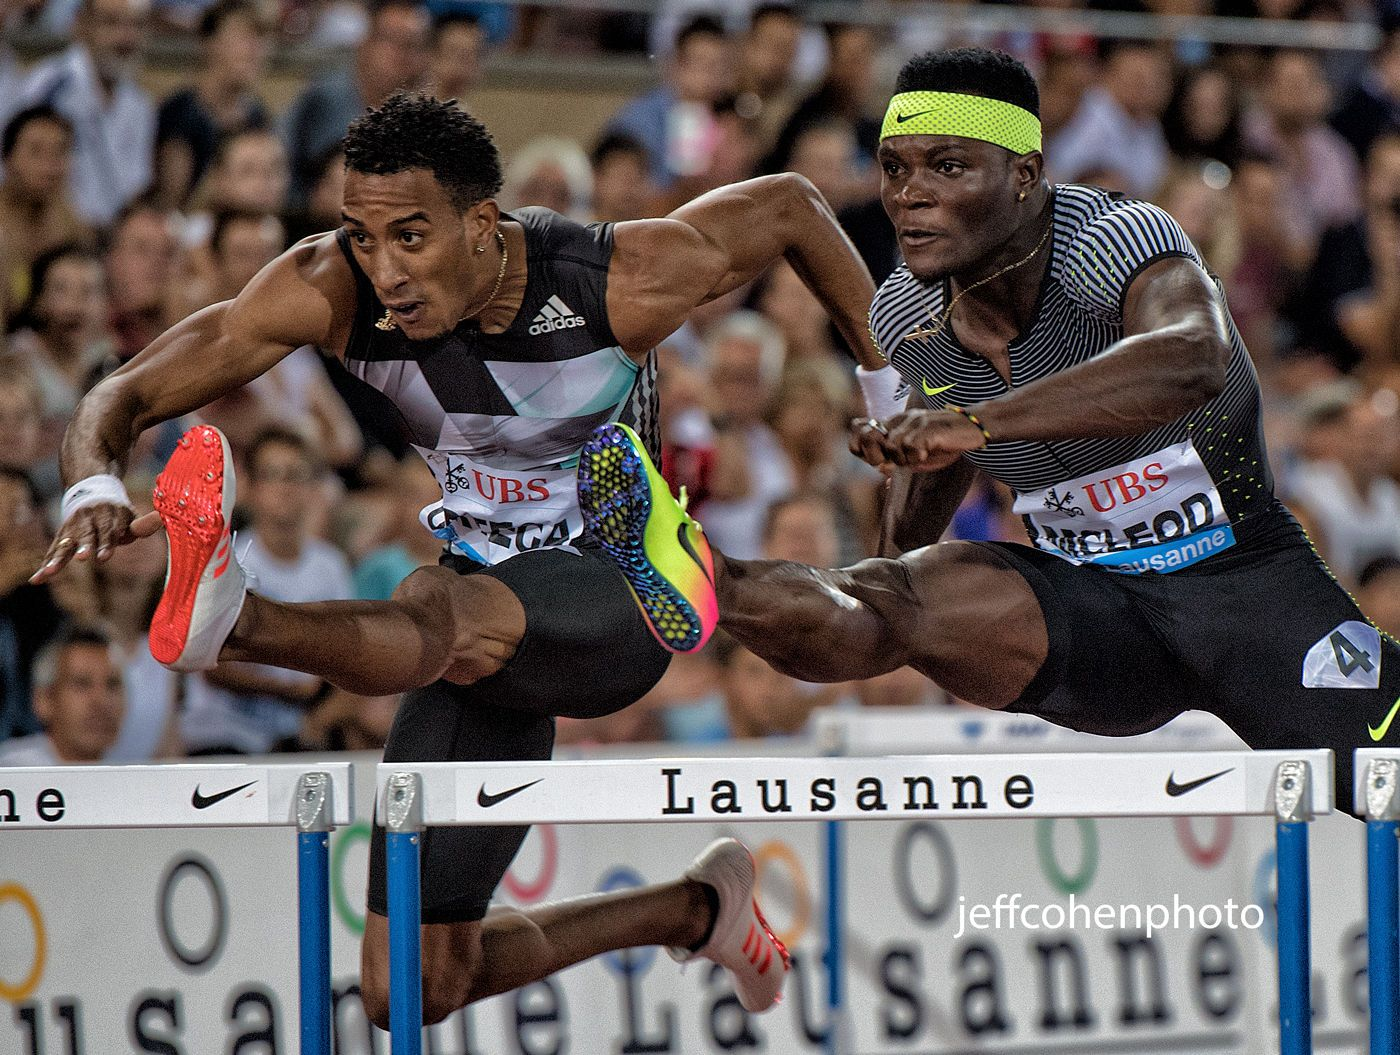 1r2016_athletissima_lausanne_ortega_mccleod_110mh_jeff_cohen_photo_2101_web.jpg